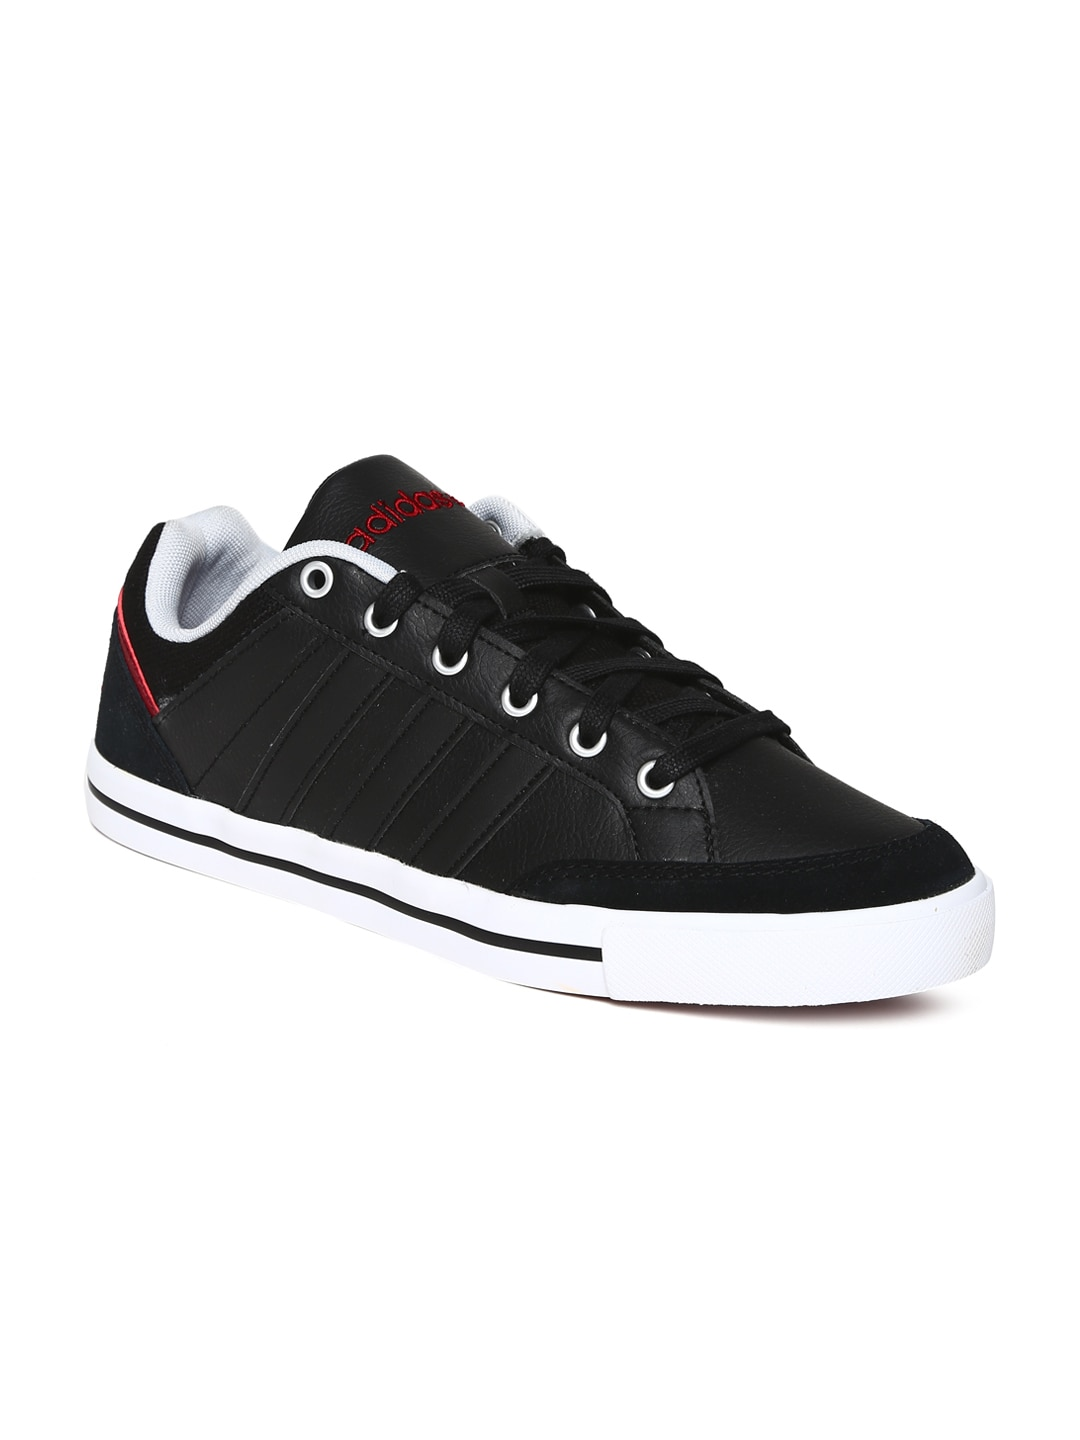 best service b1083 cf5a6 Adidas neo f97696 Men Black Cacity Leather Casual Shoes- Price in India